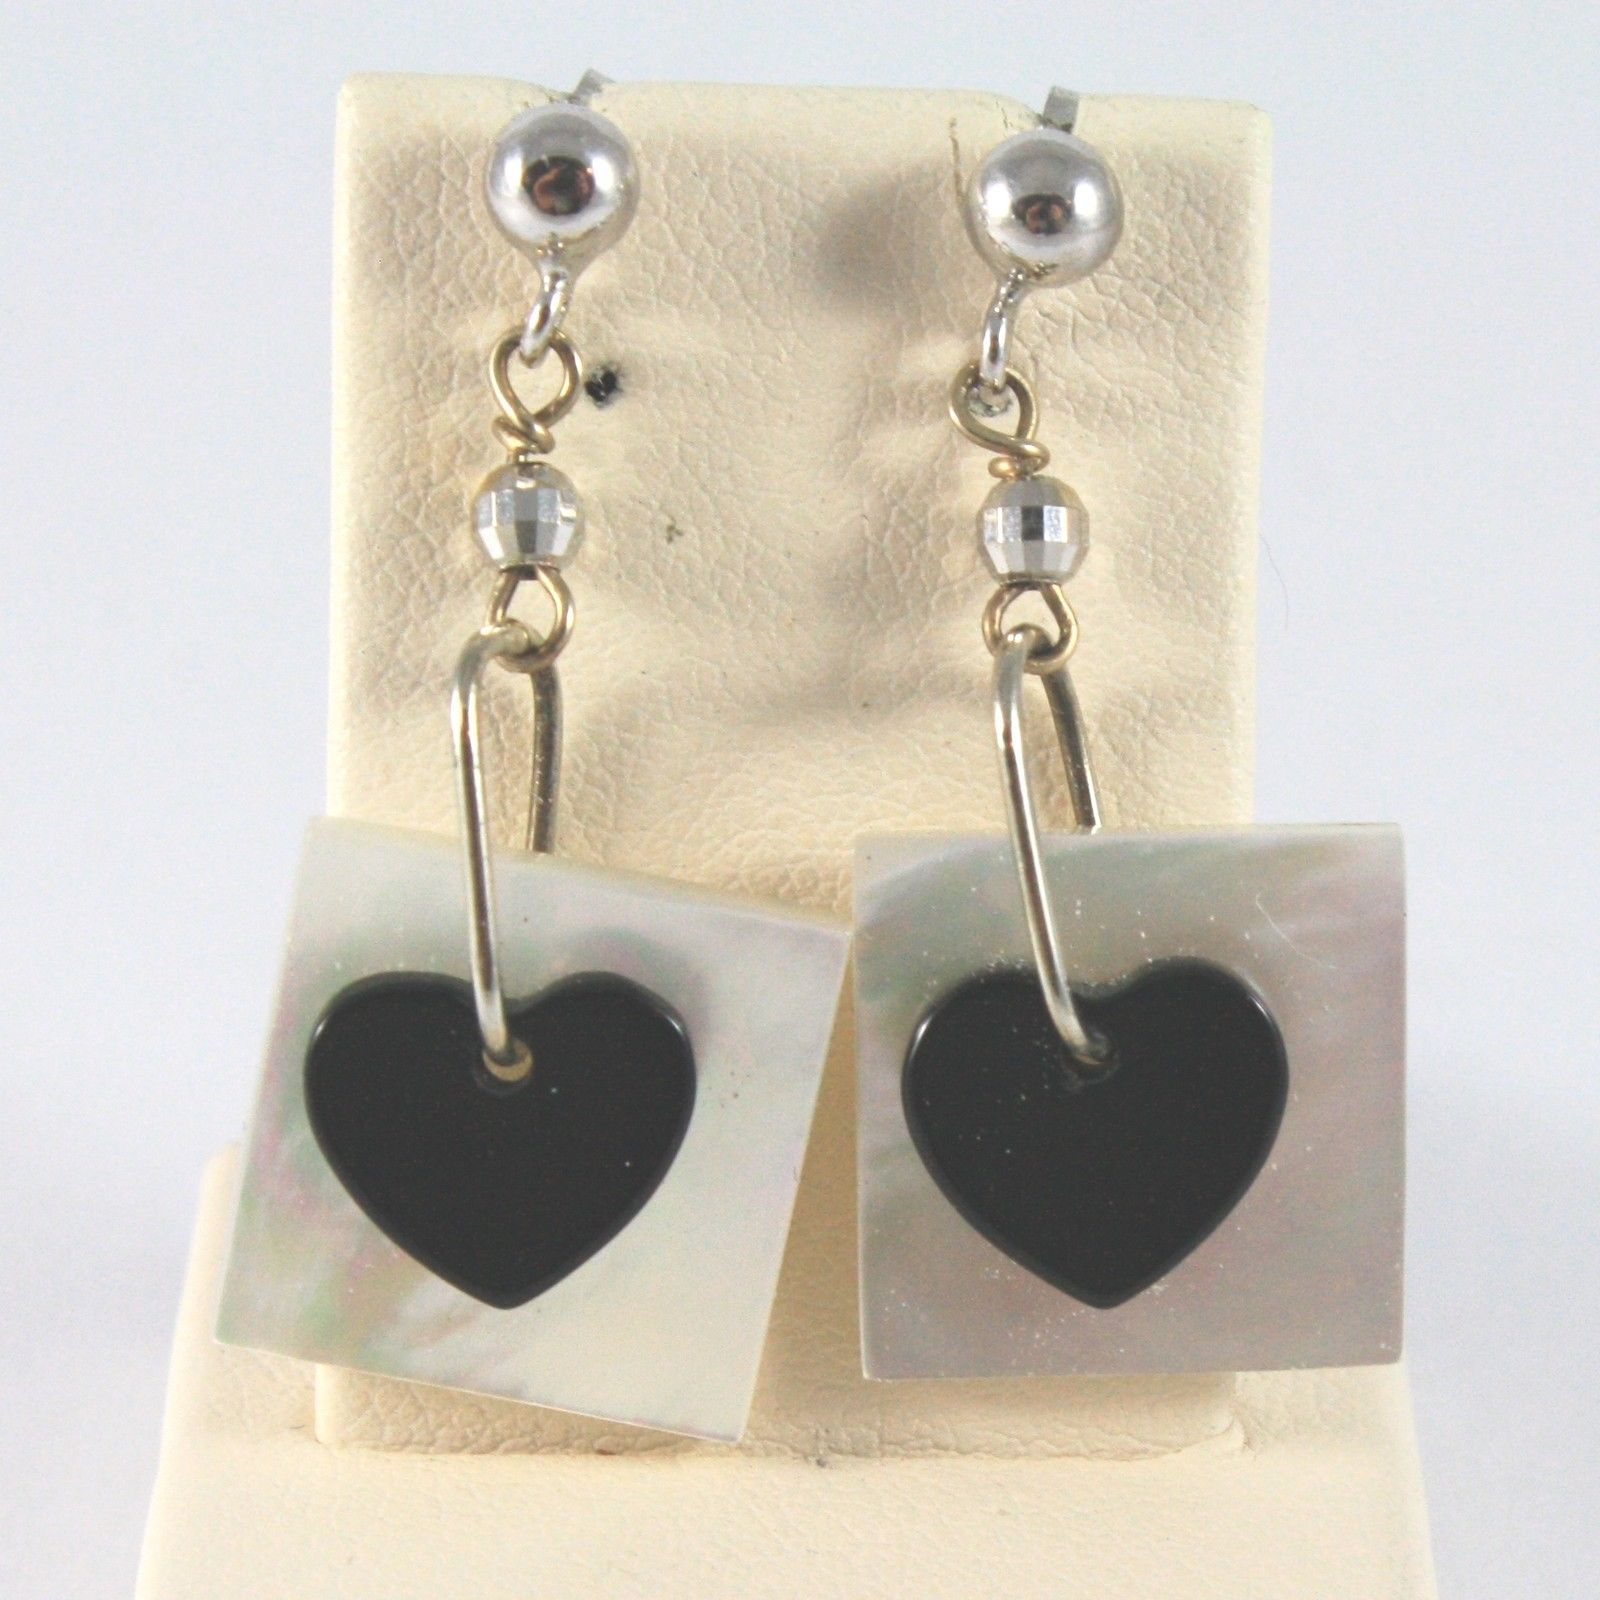 18K SOLID WHITE GOLD EARRINGS WITH MOTHER OF PEARL AND ONYX MADE IN ITALY 18K